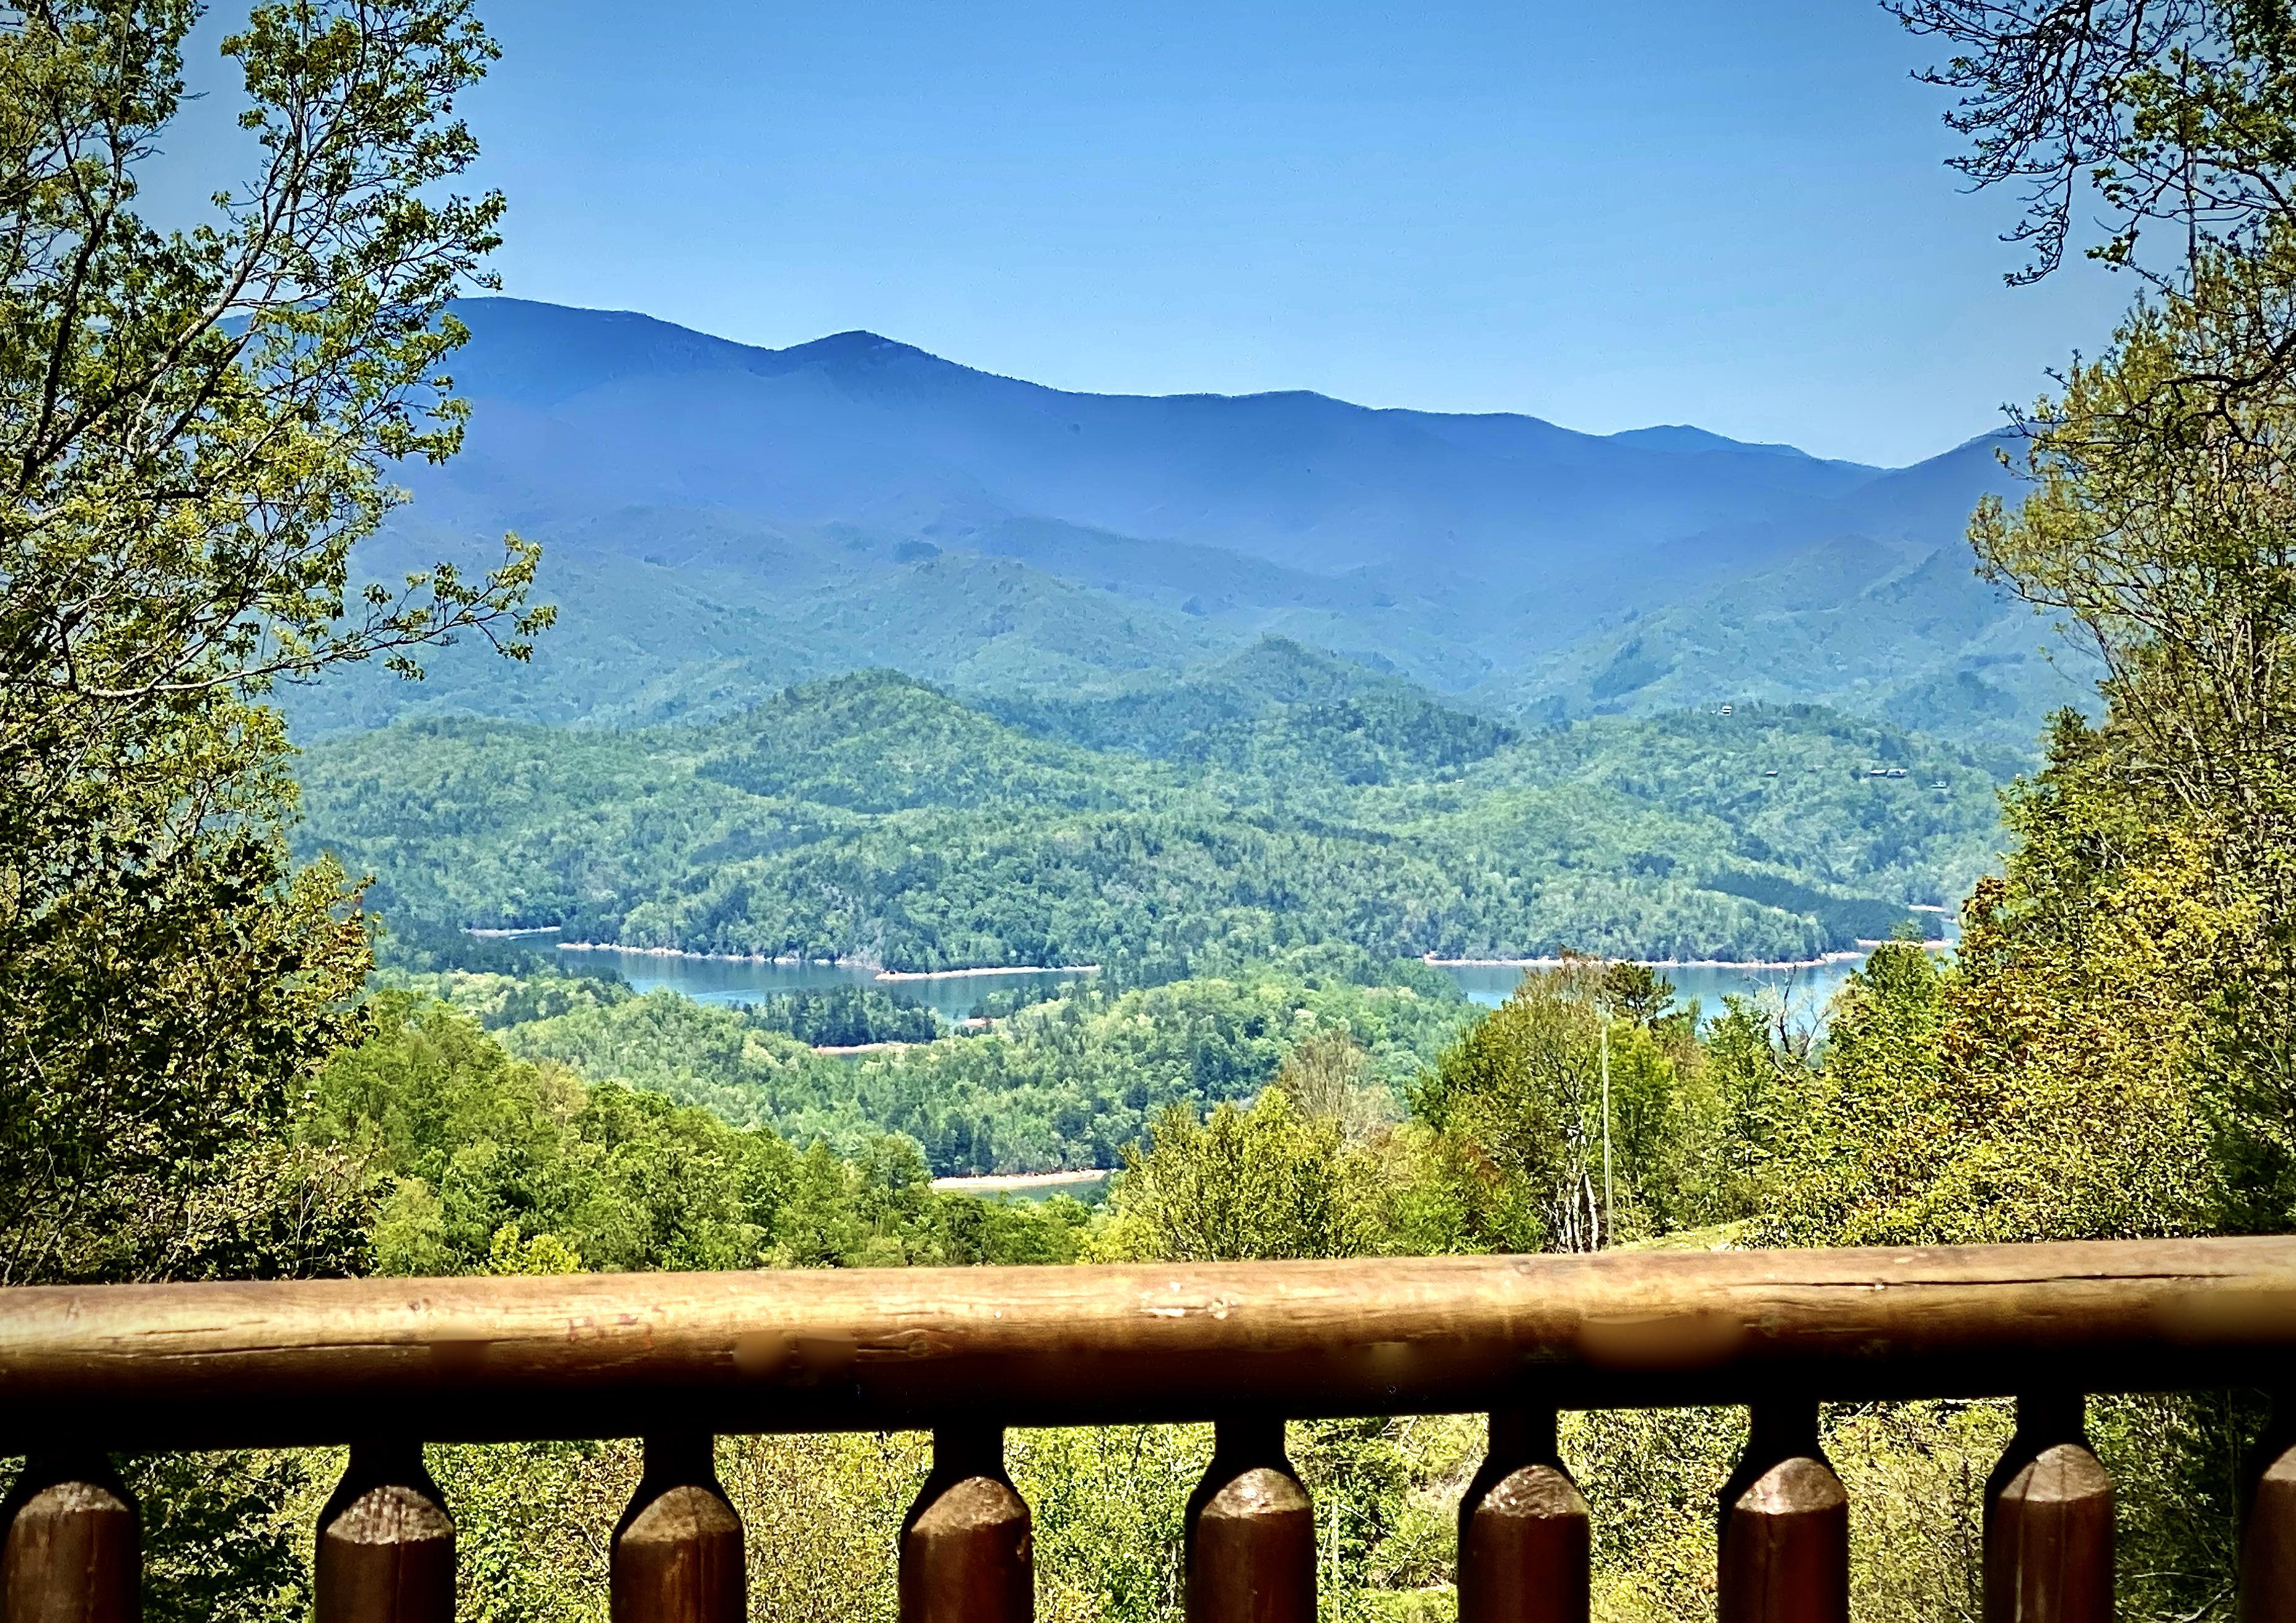 Looking from the Deck out to Lake Fontana and the Smoky Mountains beyond